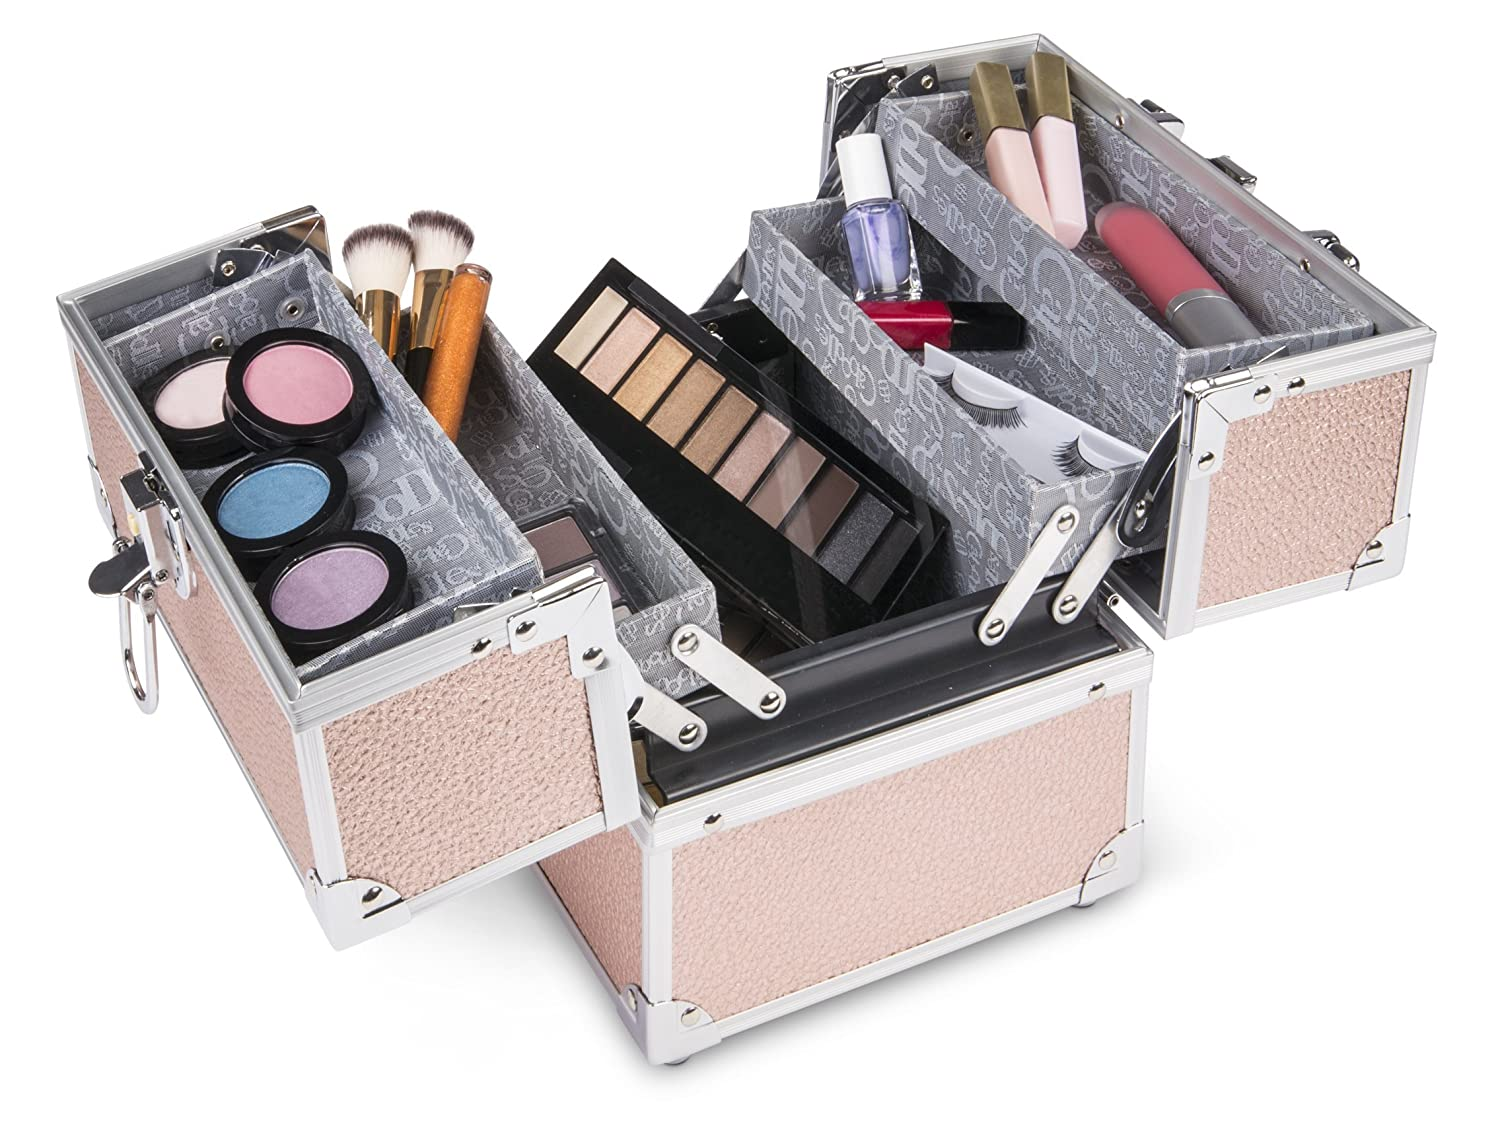 Caboodles Adored 4-tray Train Case, Includes Locking Latch with Keys, 3 Pound B07DN4X7Z3